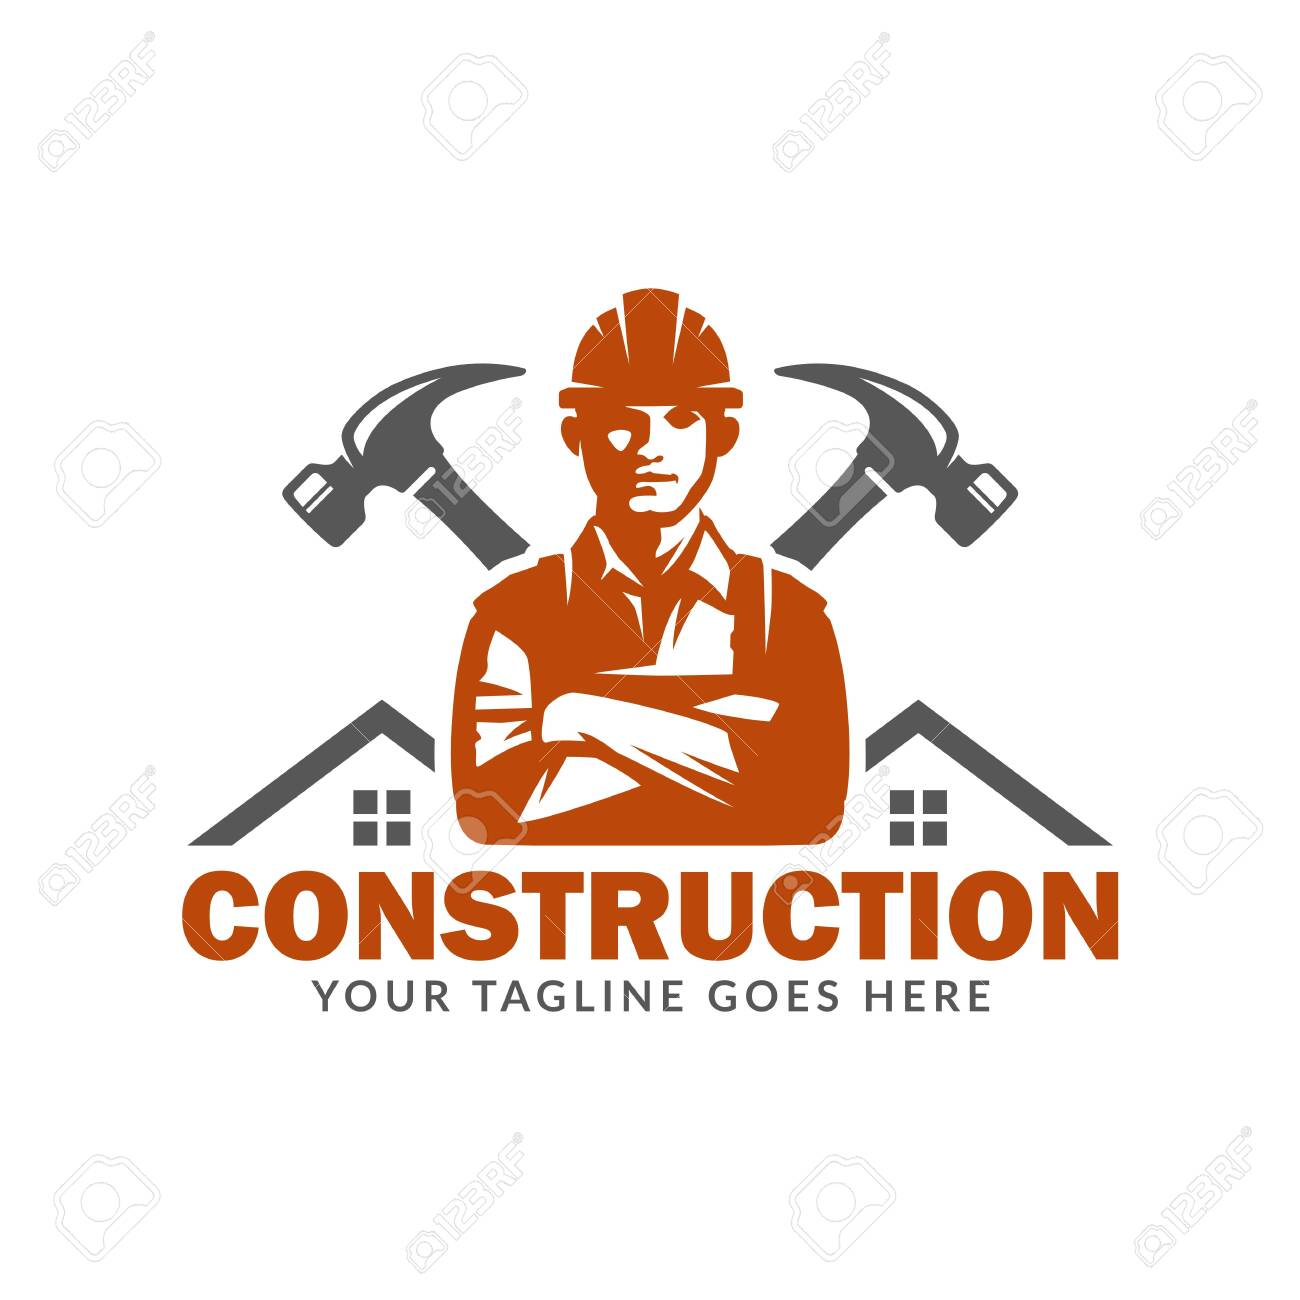 Construction logo template, suitable for construction company brand, vector format and easy to edit - 129794569